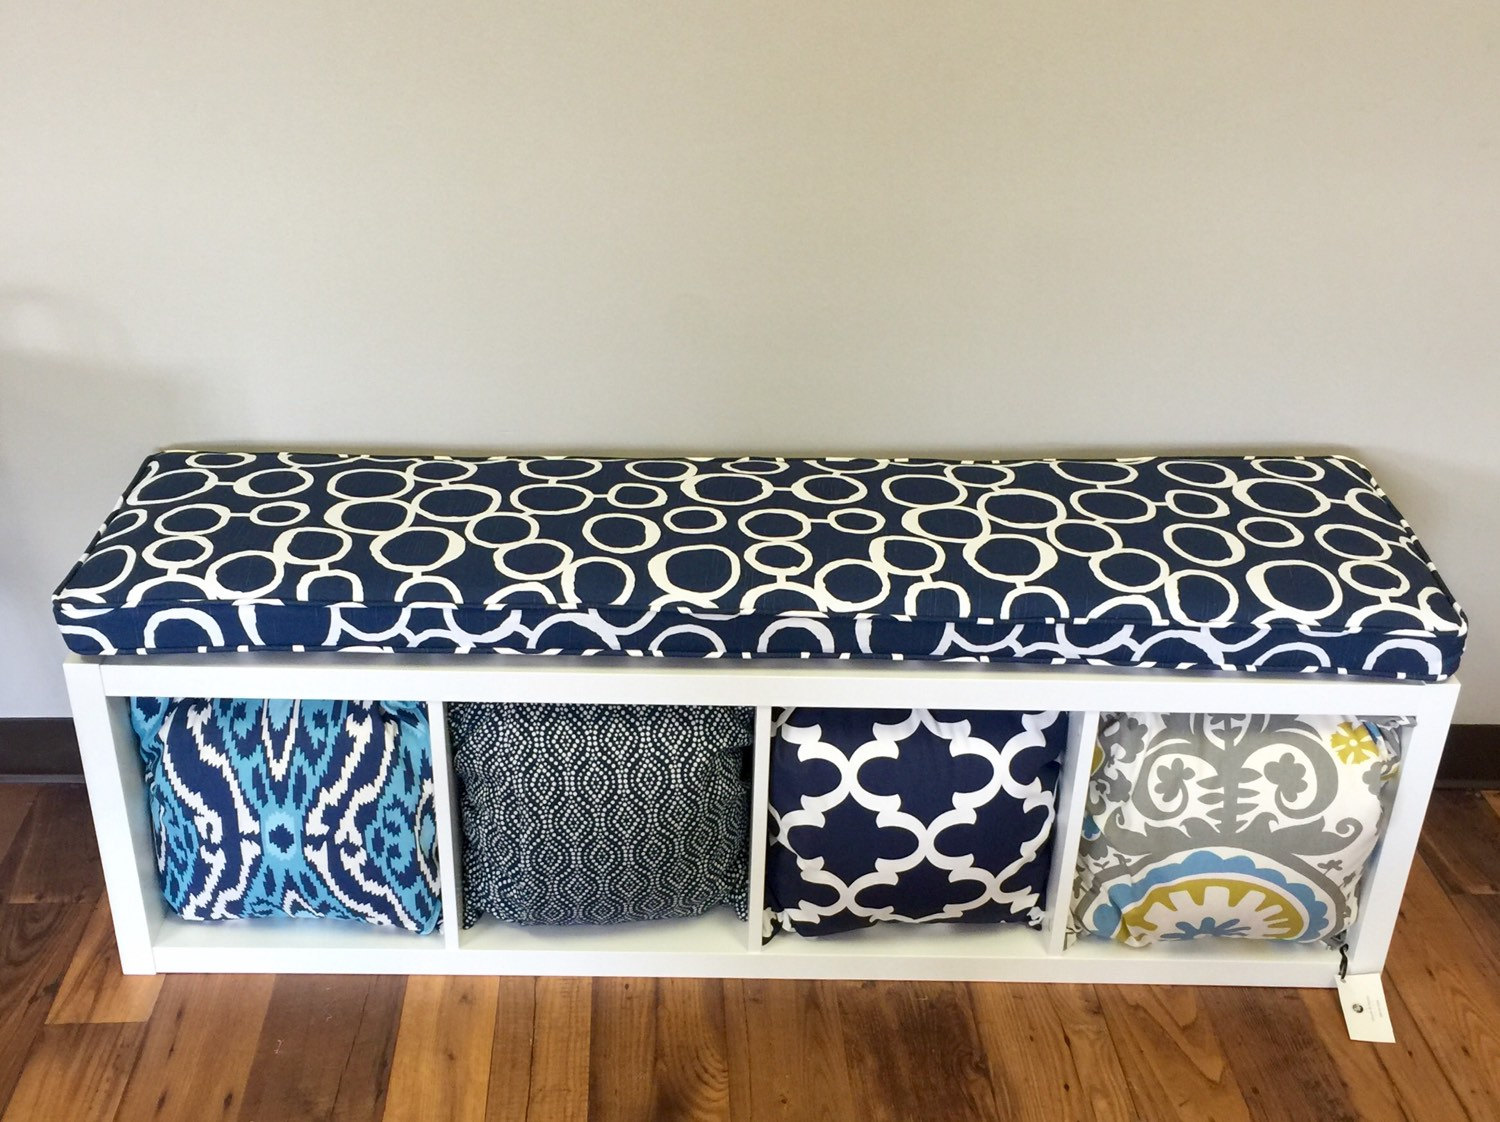 Kallax Cushions For Benches Window Seats Amp More Hearth